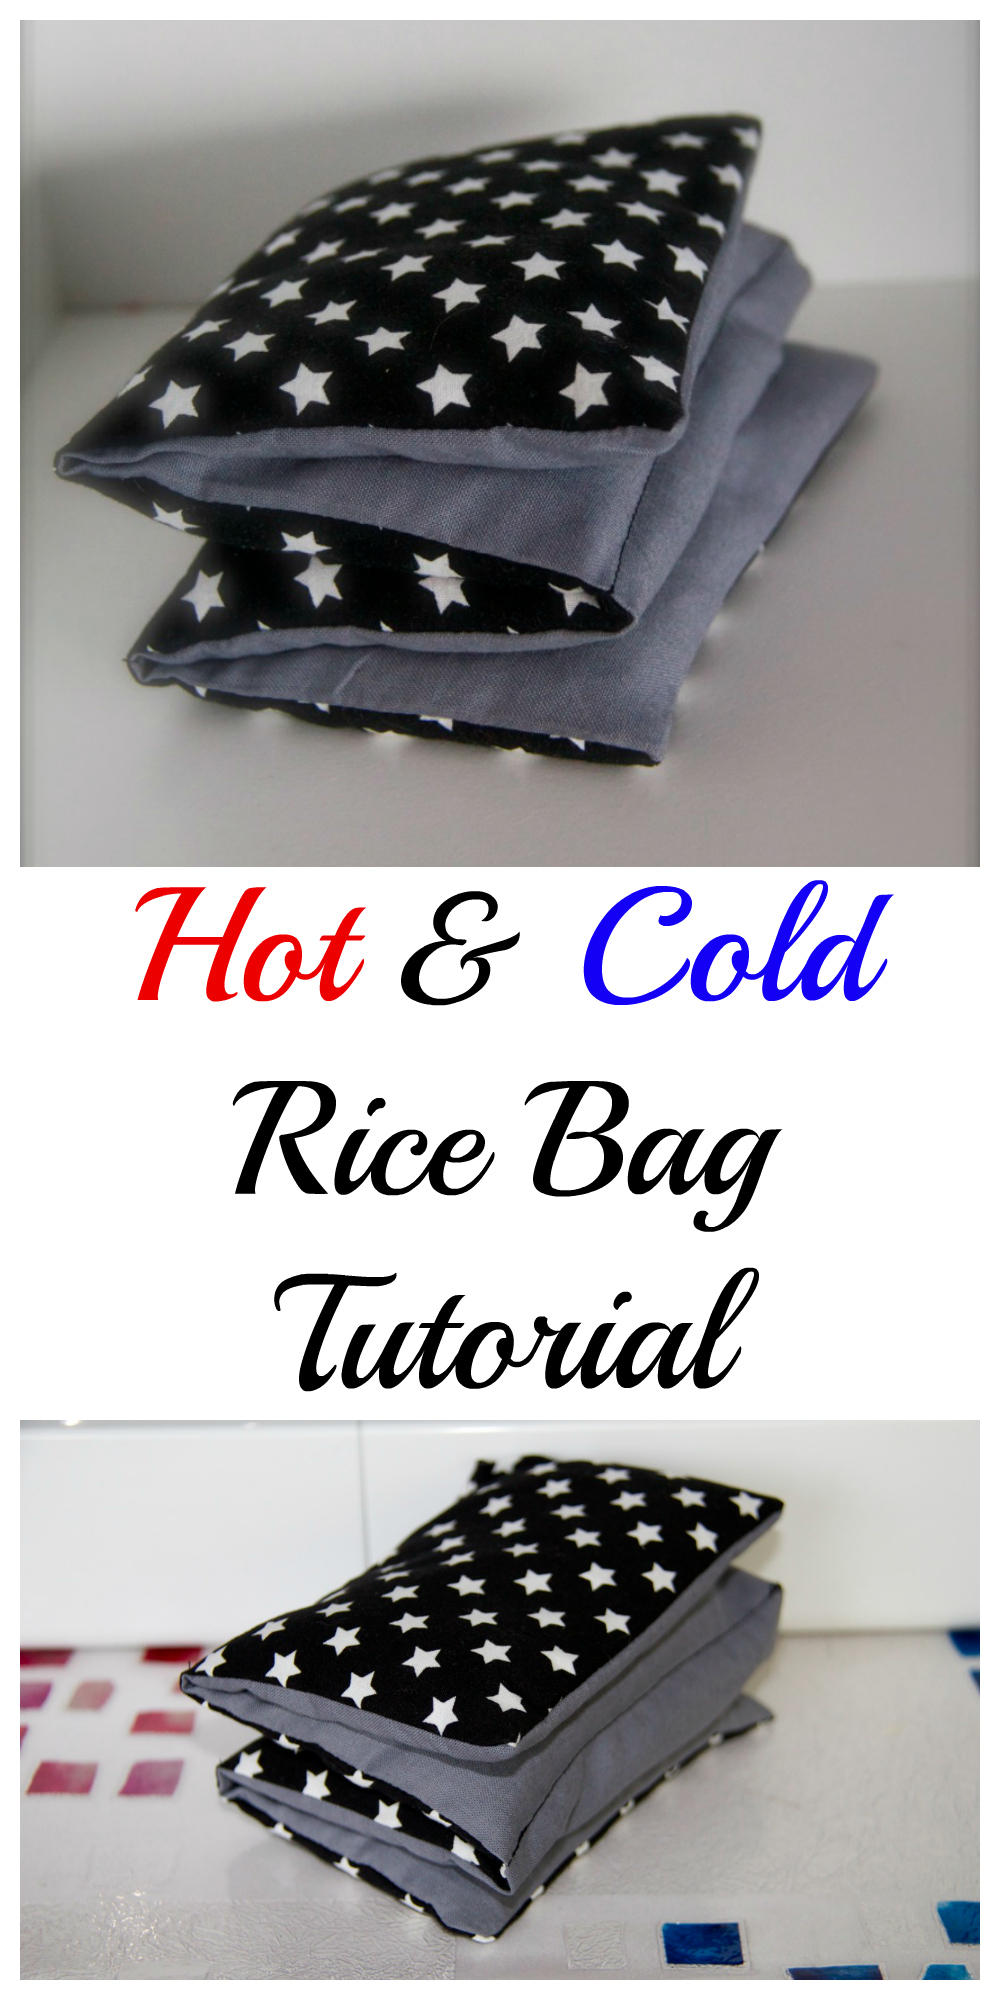 It is a photo of Sassy Printable Rice Bag Instructions